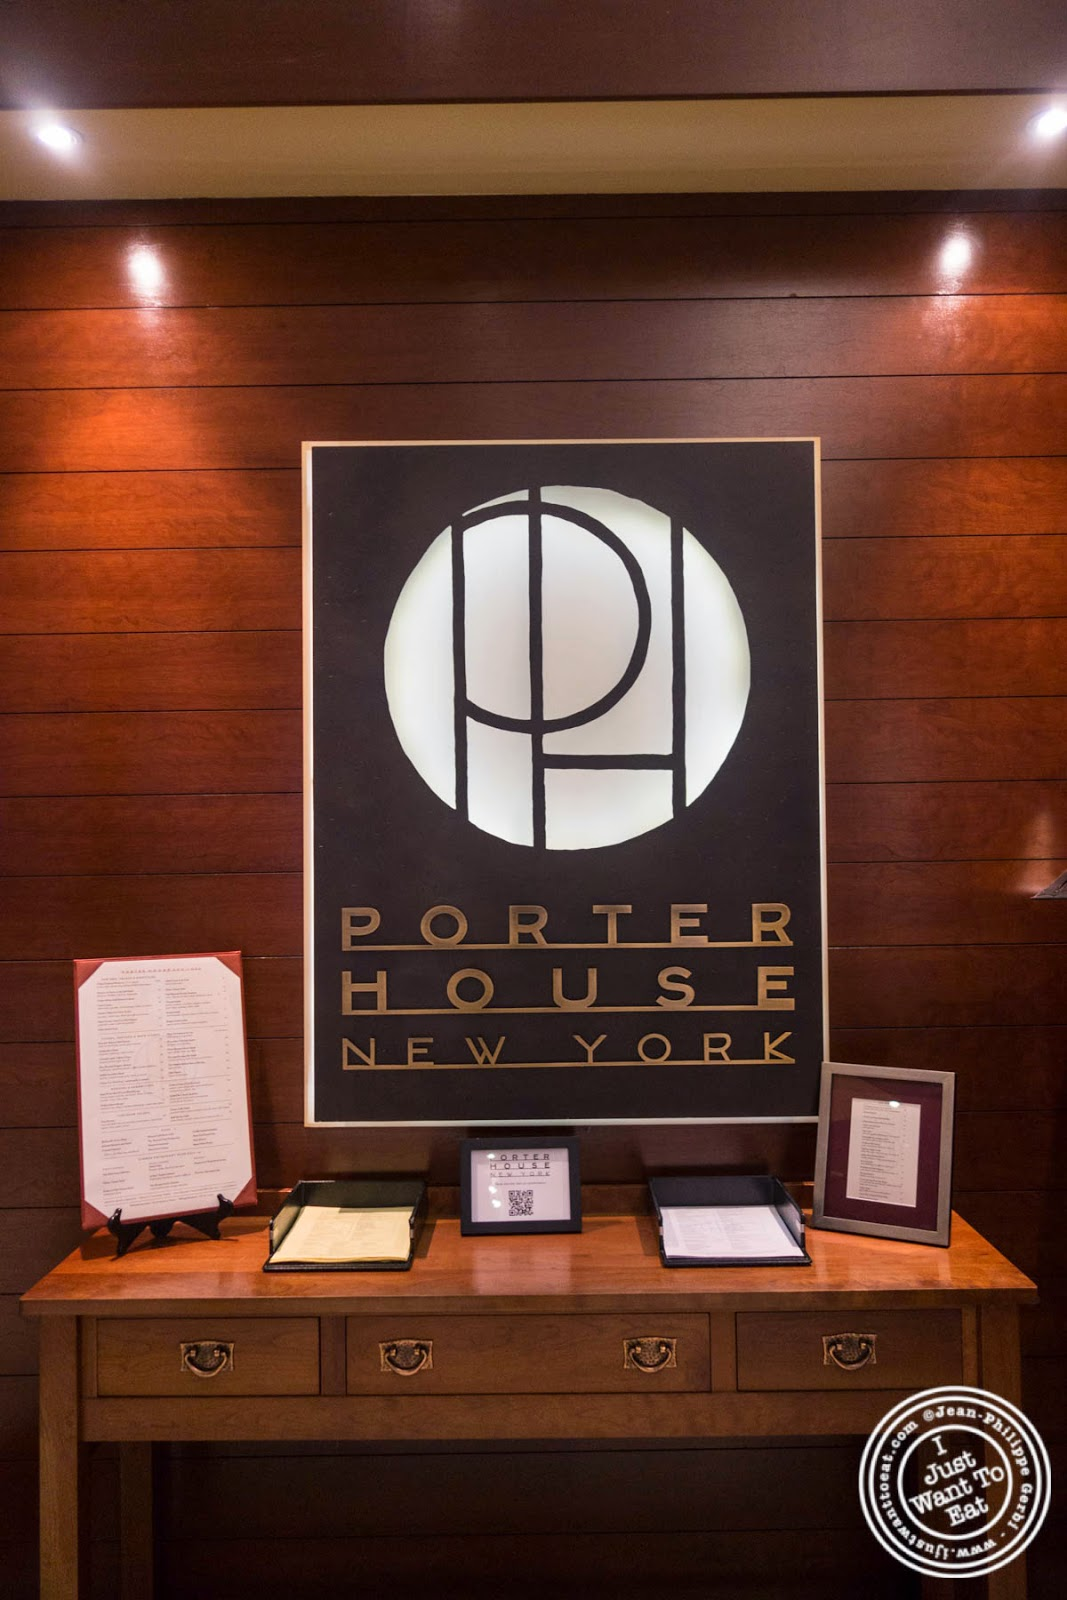 image of Porterhouse in New York, NY